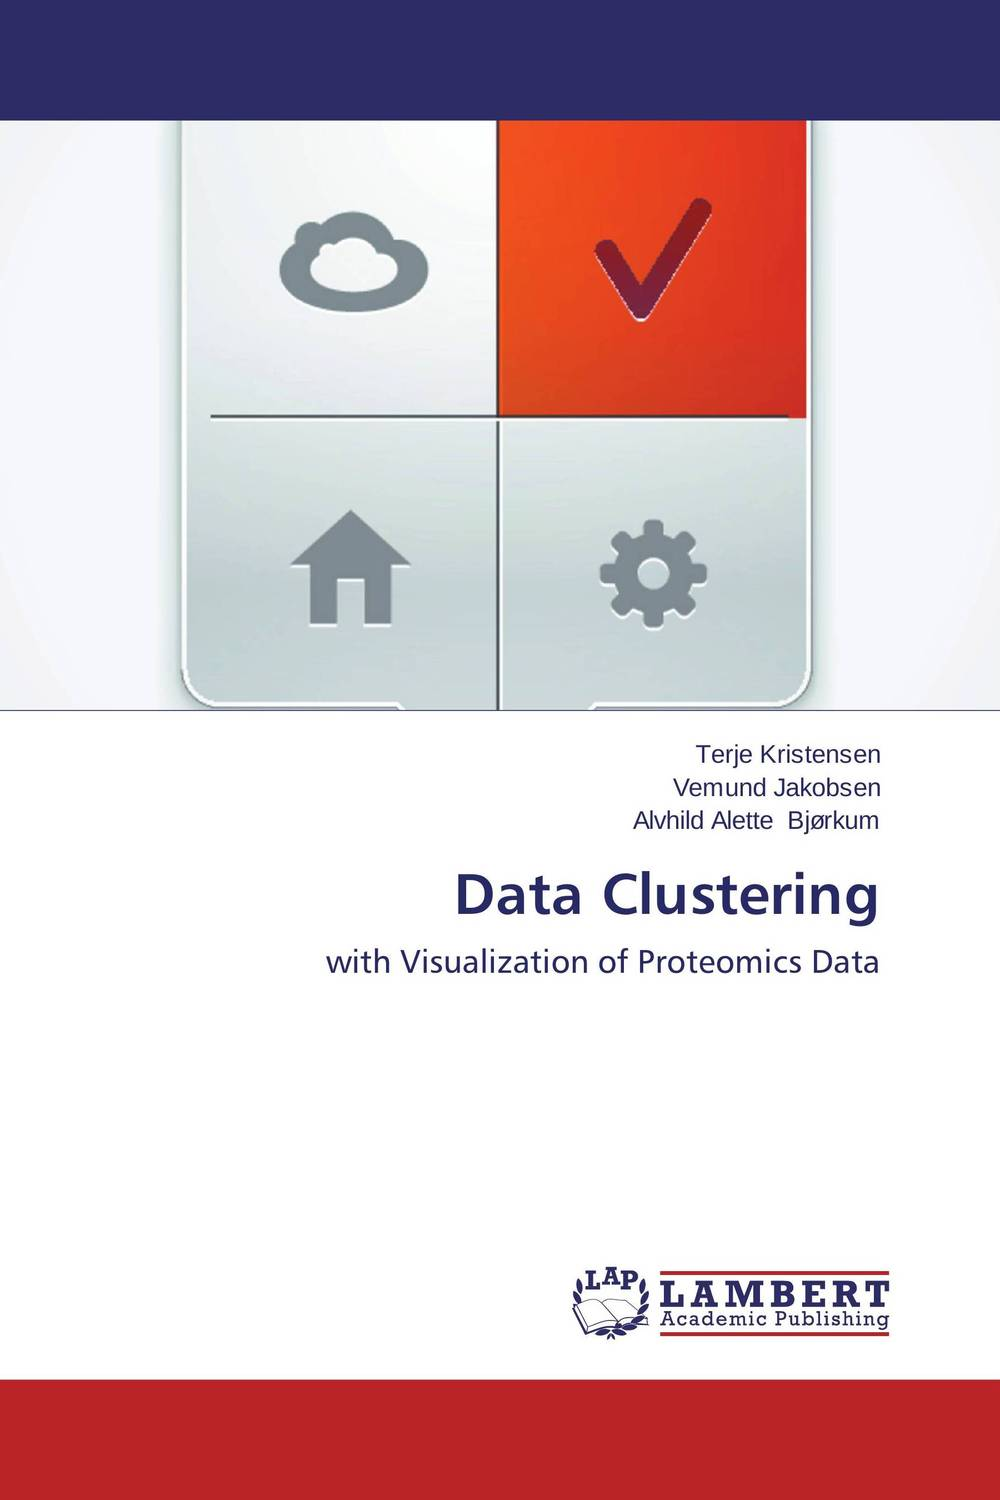 Data Clustering clustering and classification methods used in biosequence analysis